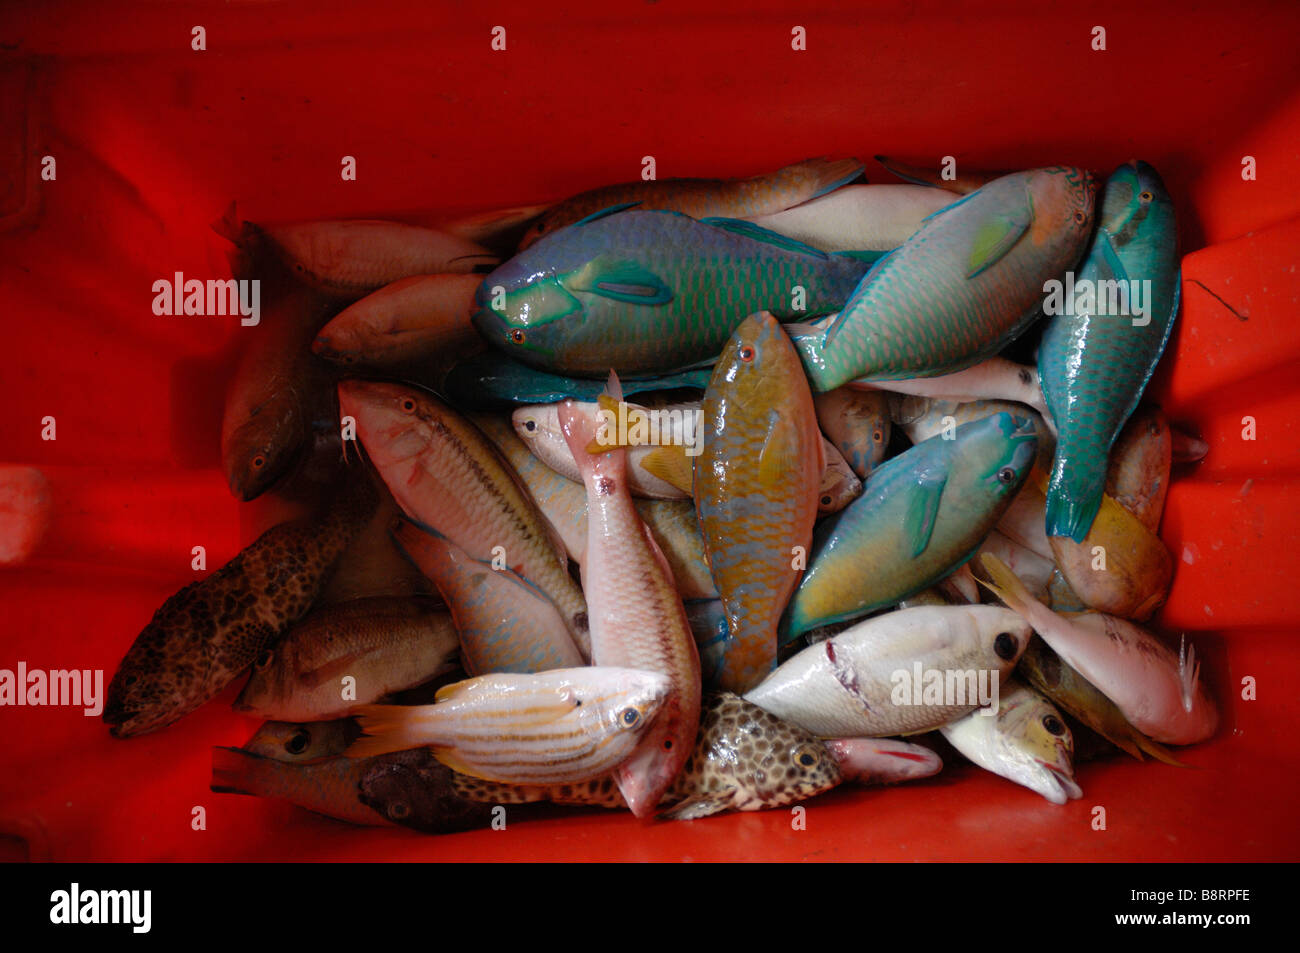 Red box of a variety of fish Semporna wet fish market Semporna Sabah Malaysia Borneo South east Asia - Stock Image